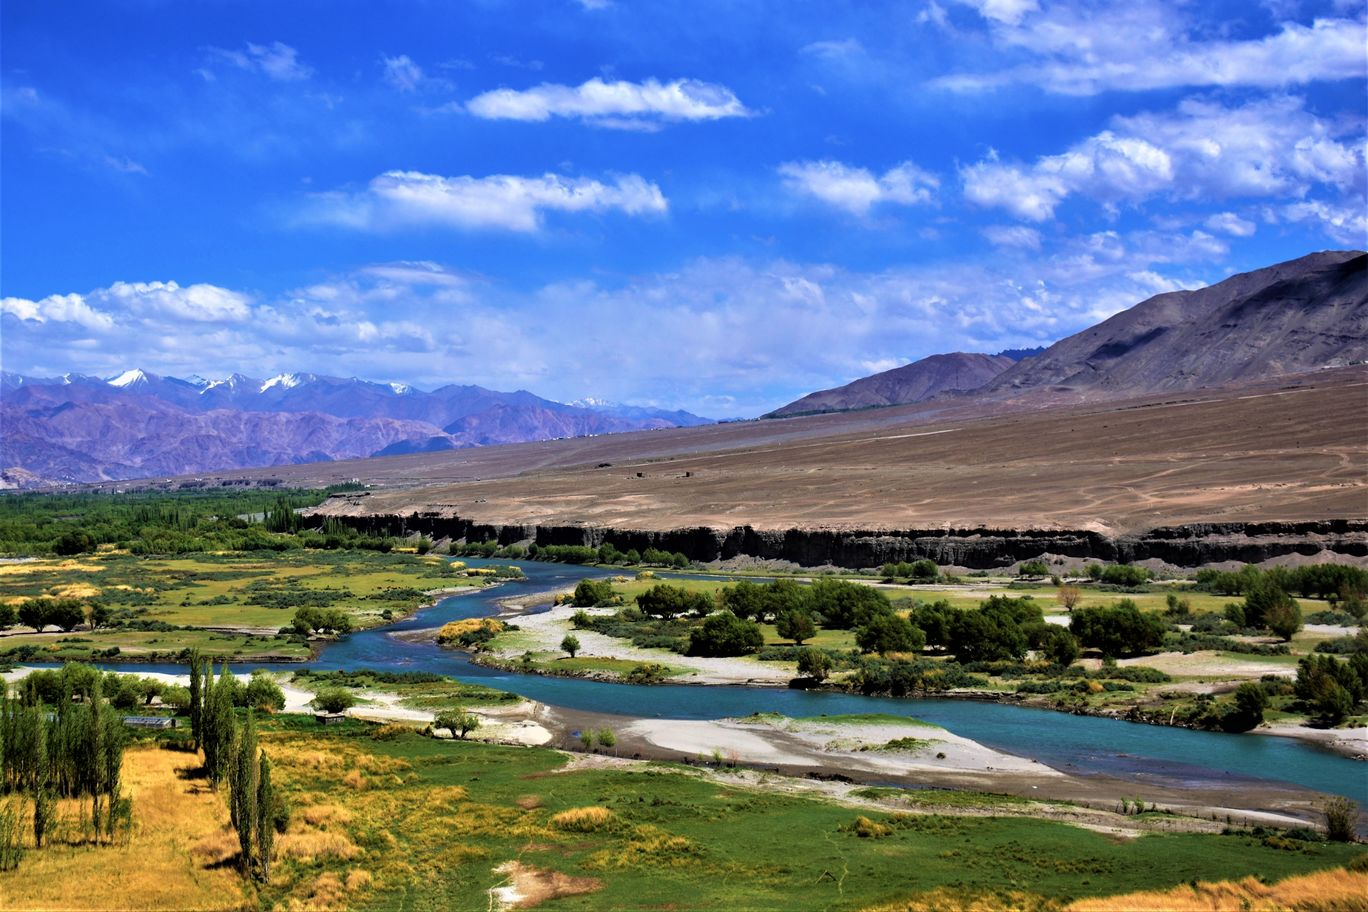 Photo of Leh By Radhika Sharma